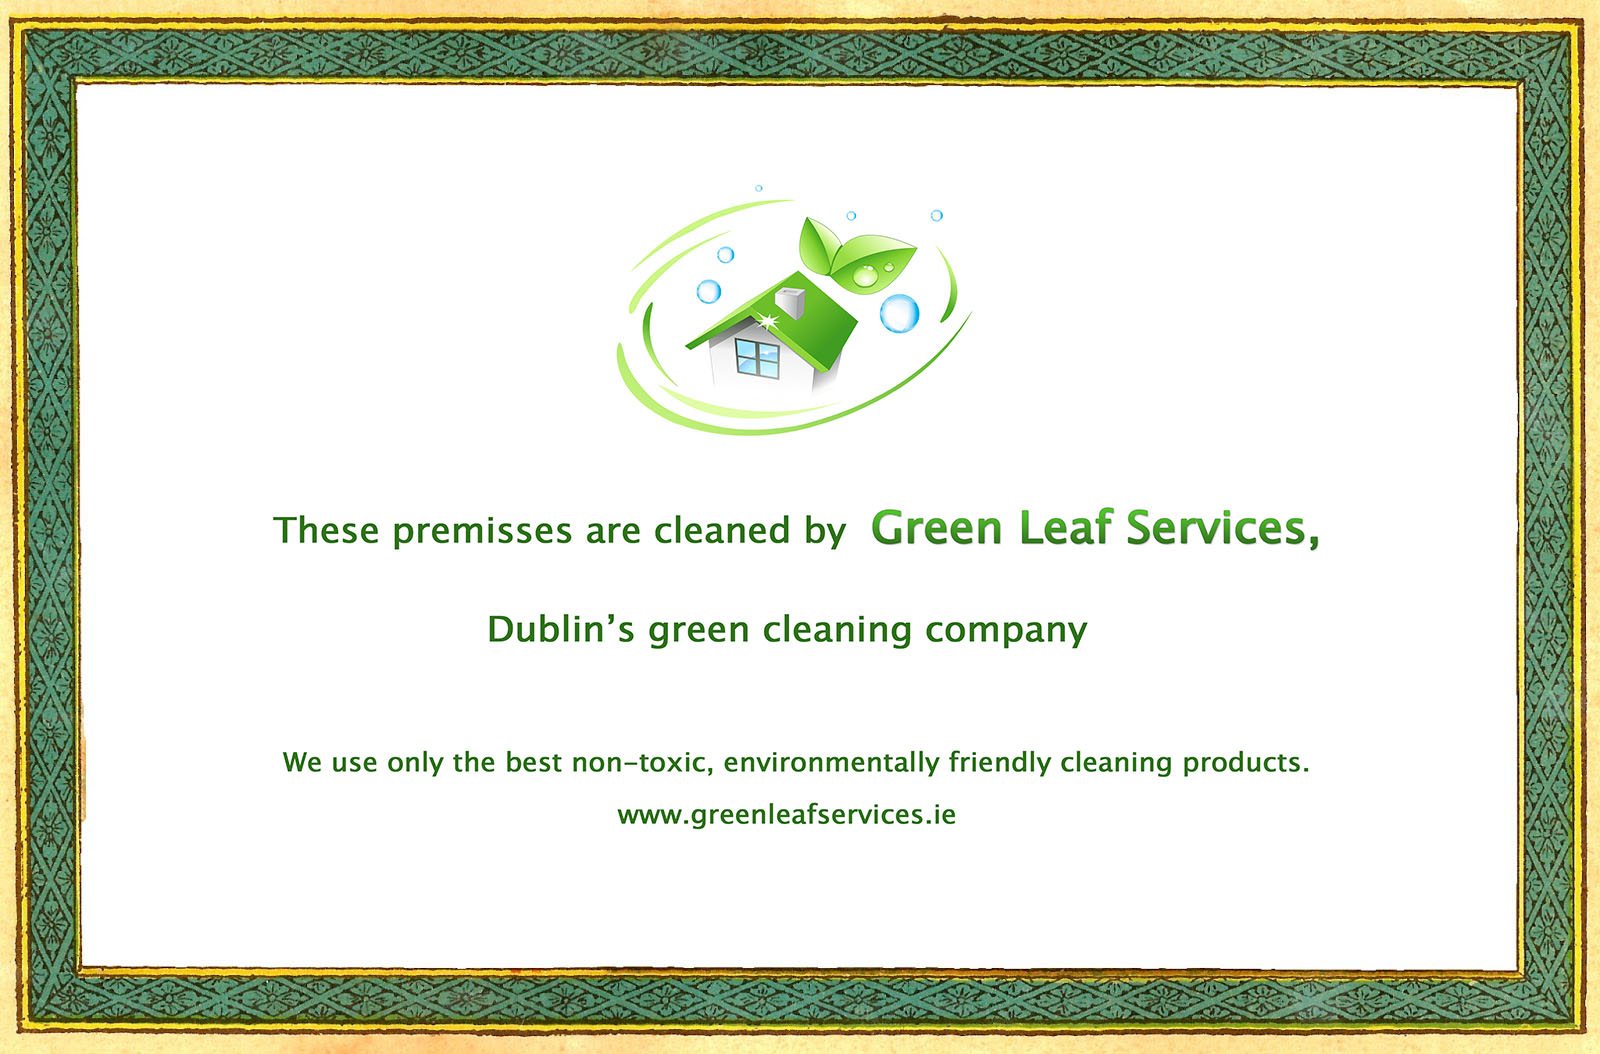 Cleaned by Green Leaf Services, Dublin